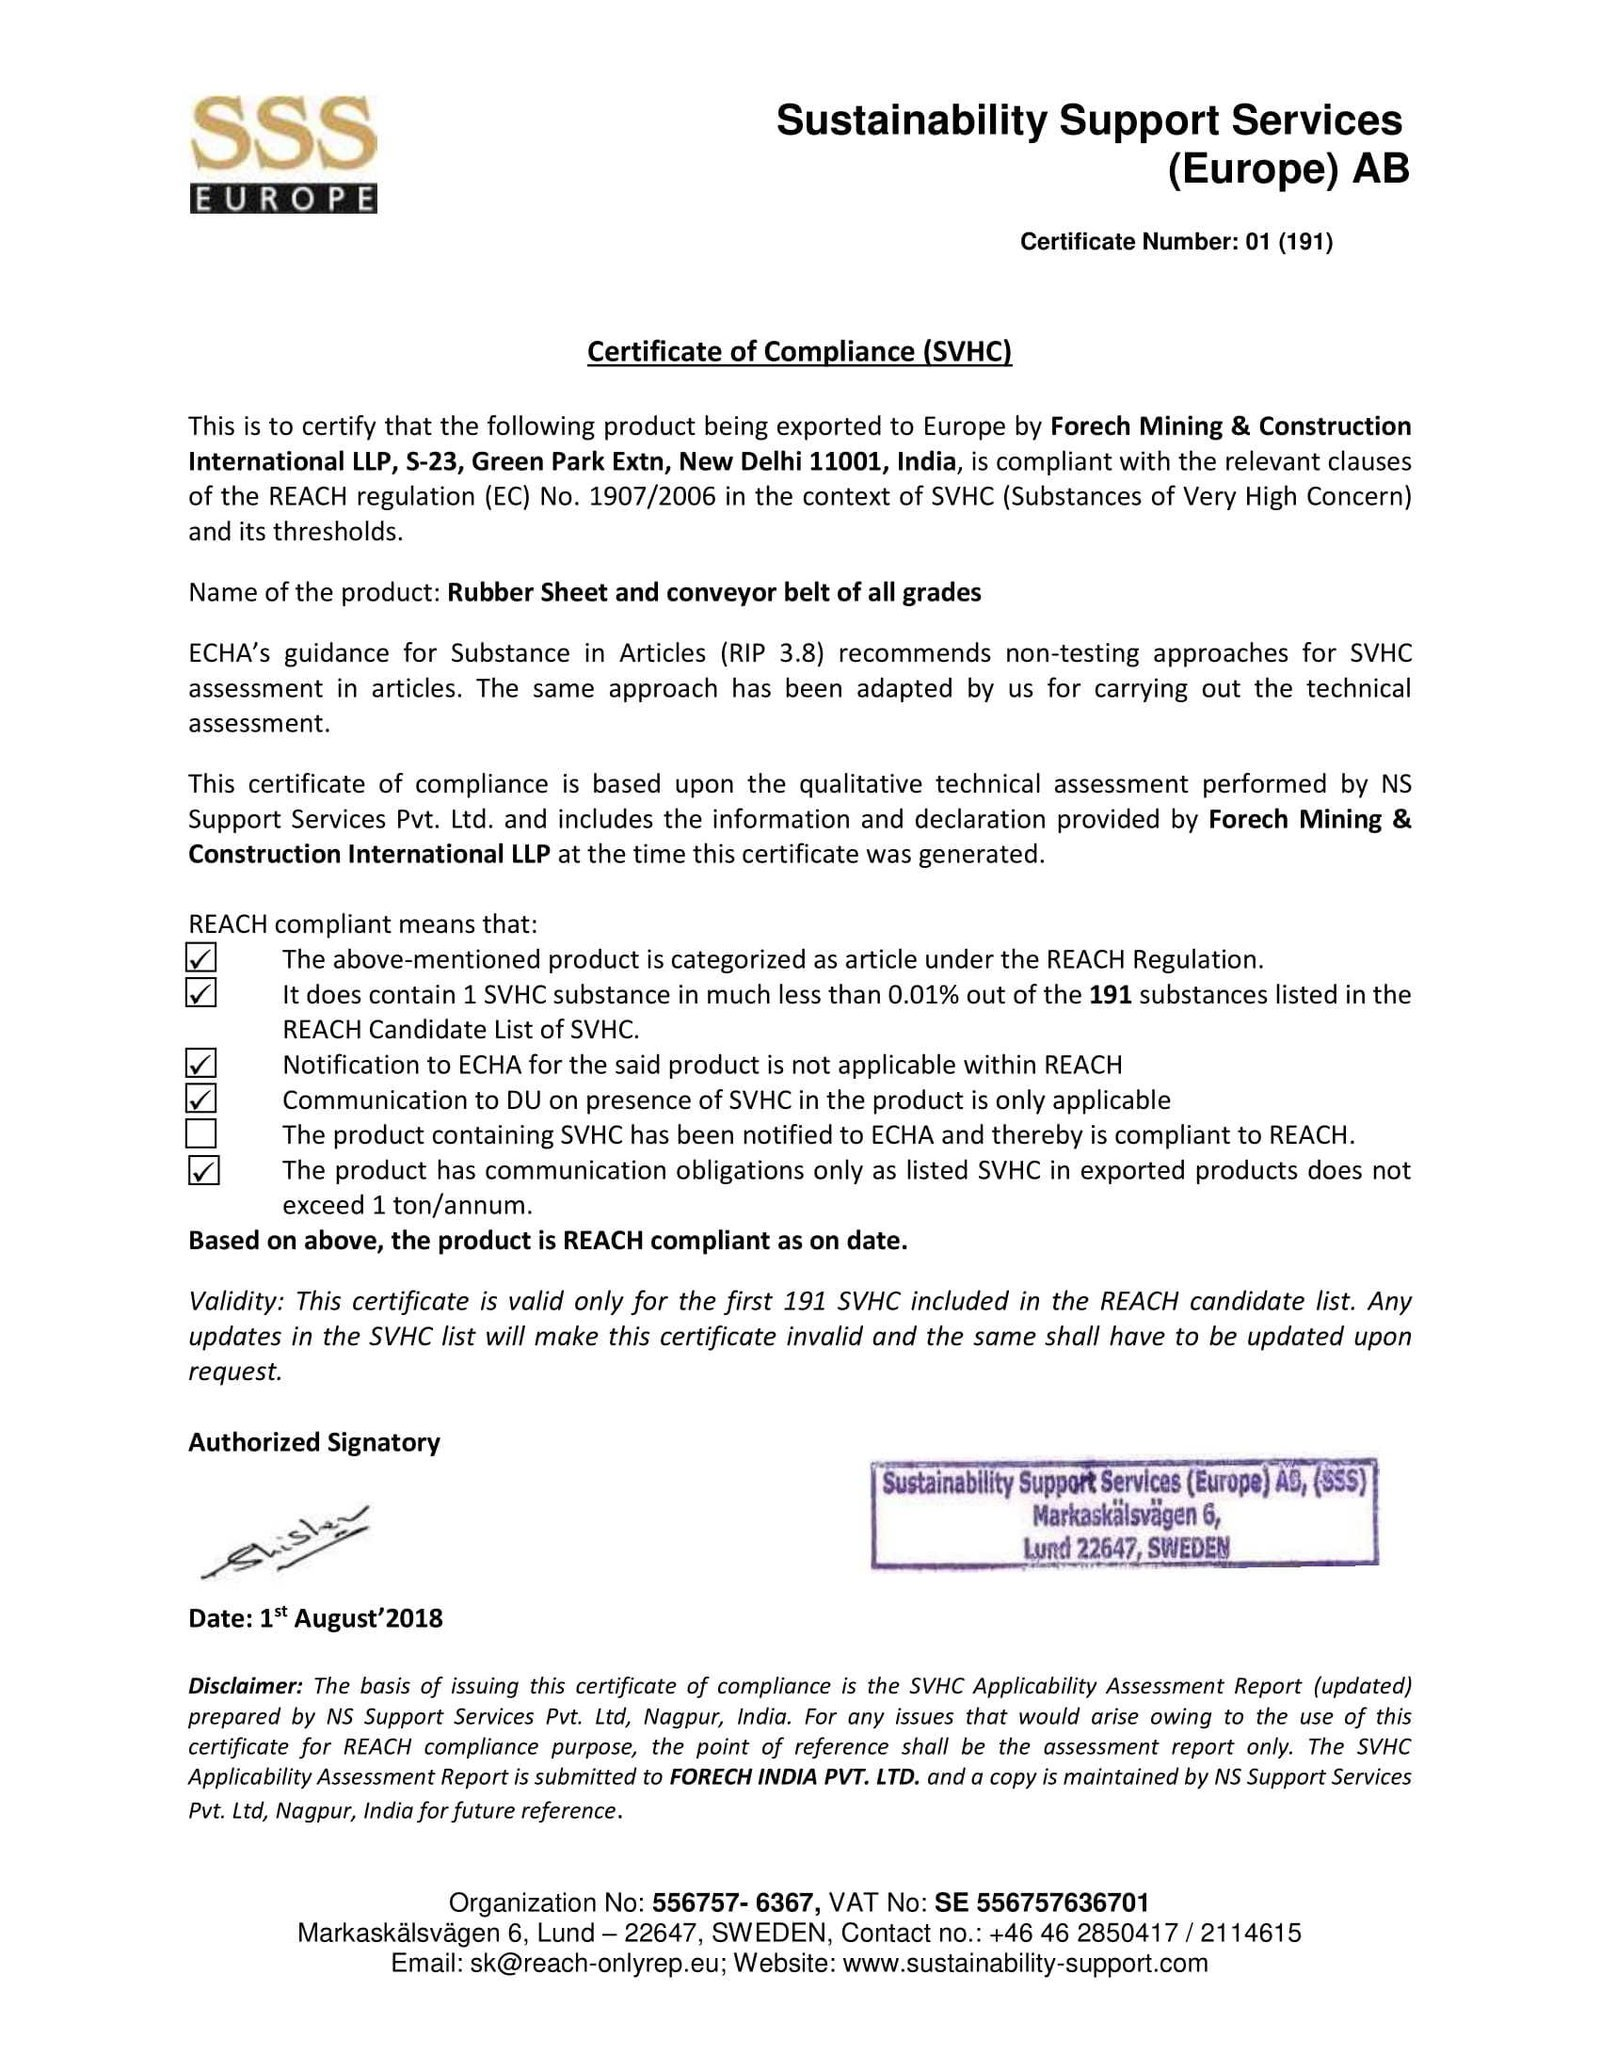 Scan of REACH for Forech Mining & Construction Int. LLP certificate